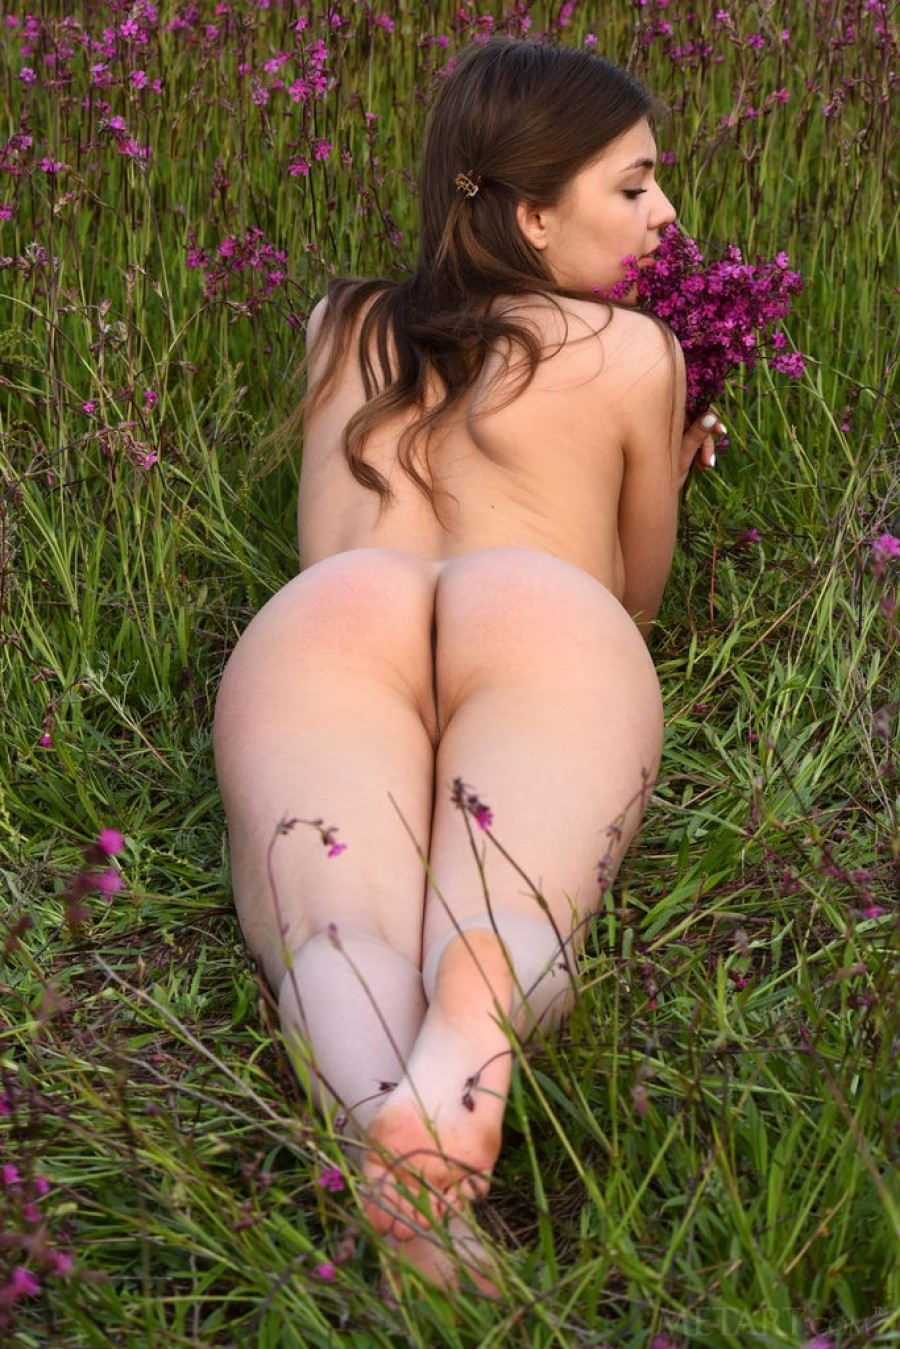 Cutie gets a lavender orgasm in field